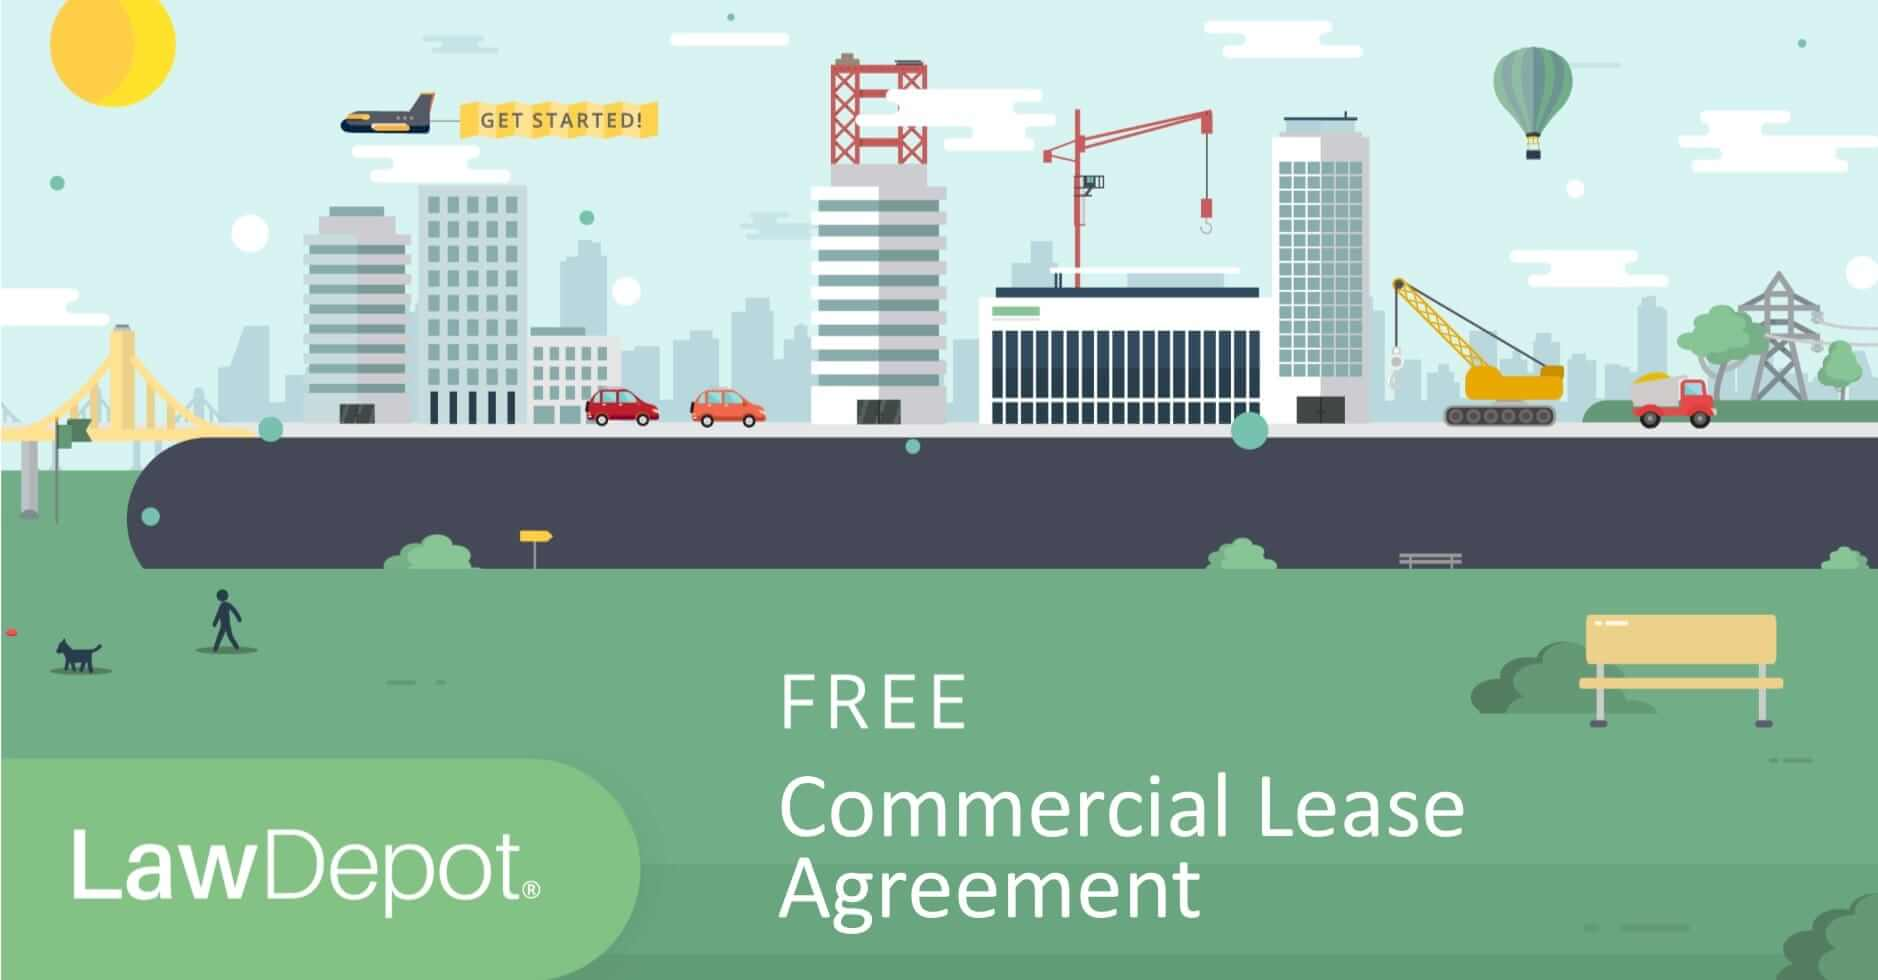 LawDepot  Free Commercial Lease Agreement Forms To Print